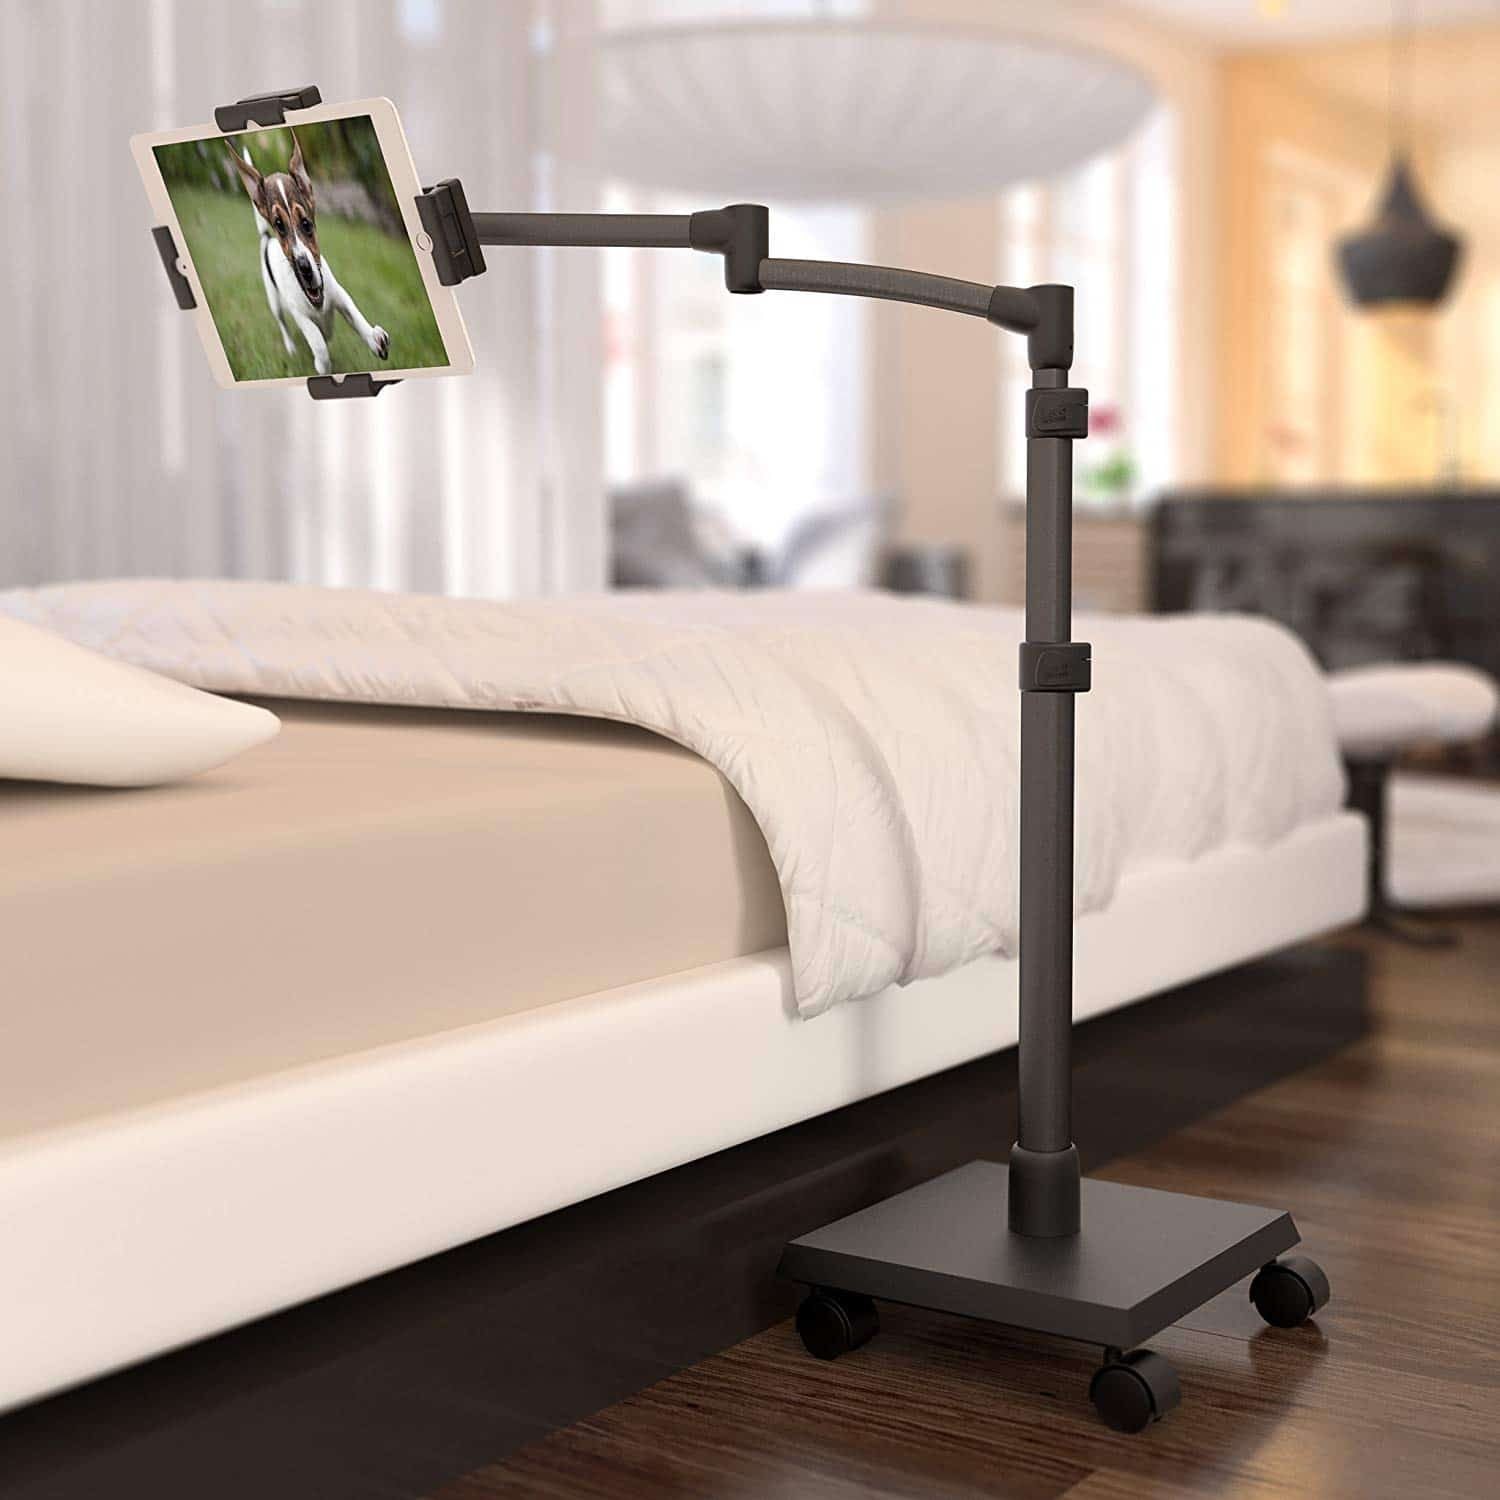 Top 12 Best Ipad Holders For Bed In